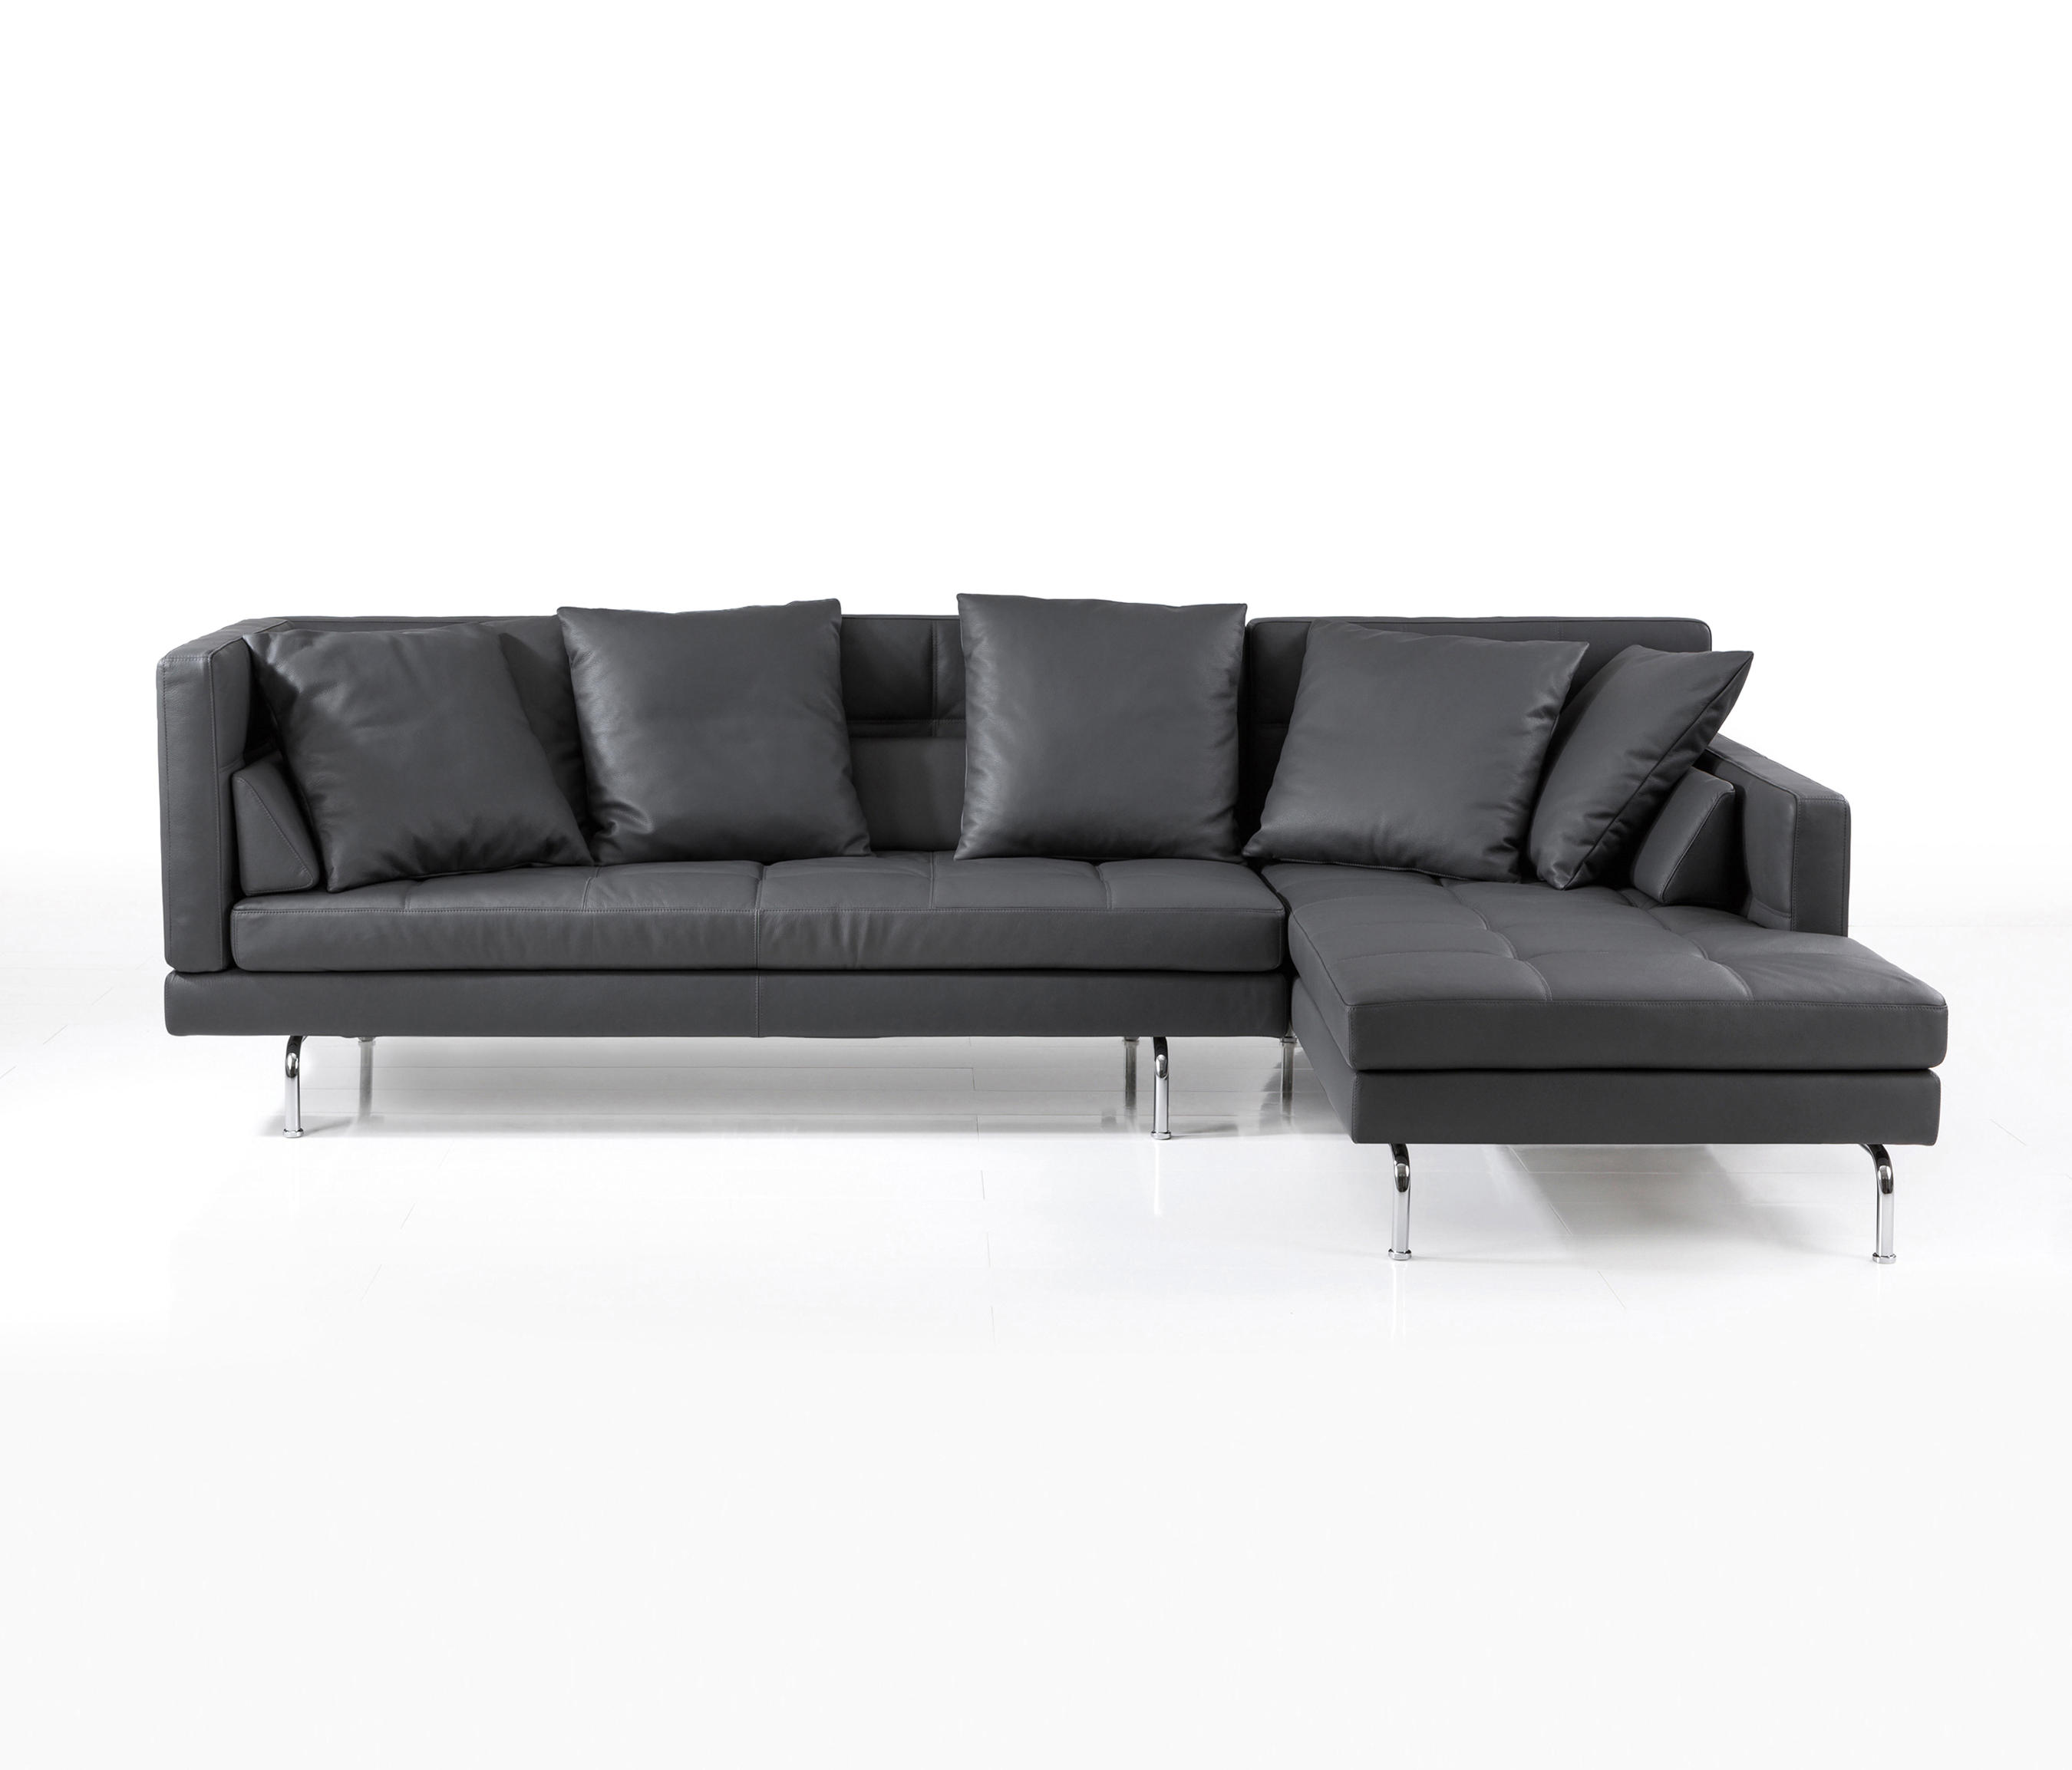 amber sofa modulare sitzgruppen von br hl architonic. Black Bedroom Furniture Sets. Home Design Ideas